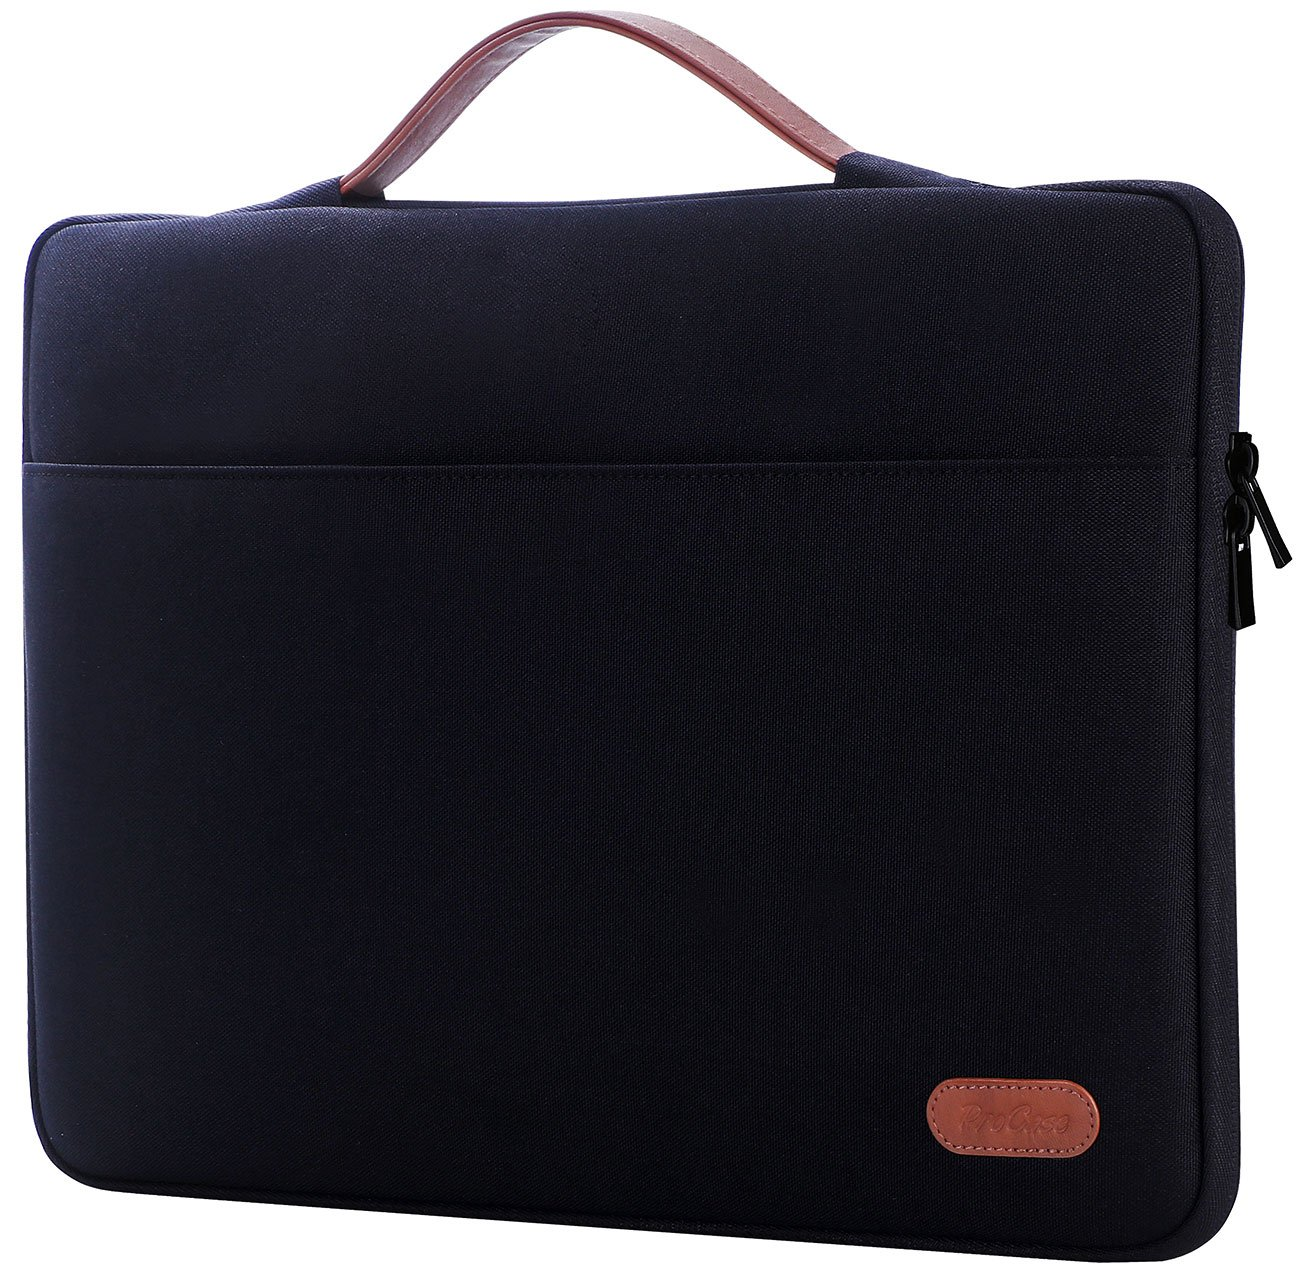 ProCase 12-12.9 Inch Sleeve Case Bag for Surface Pro 2017/Pro 4 3, MacBook Pro 13, iPad Pro Protective Carrying Cover Handbag for 11'' 12'' Lenovo Dell Toshiba HP ASUS Acer Chromebook Laptop -Black